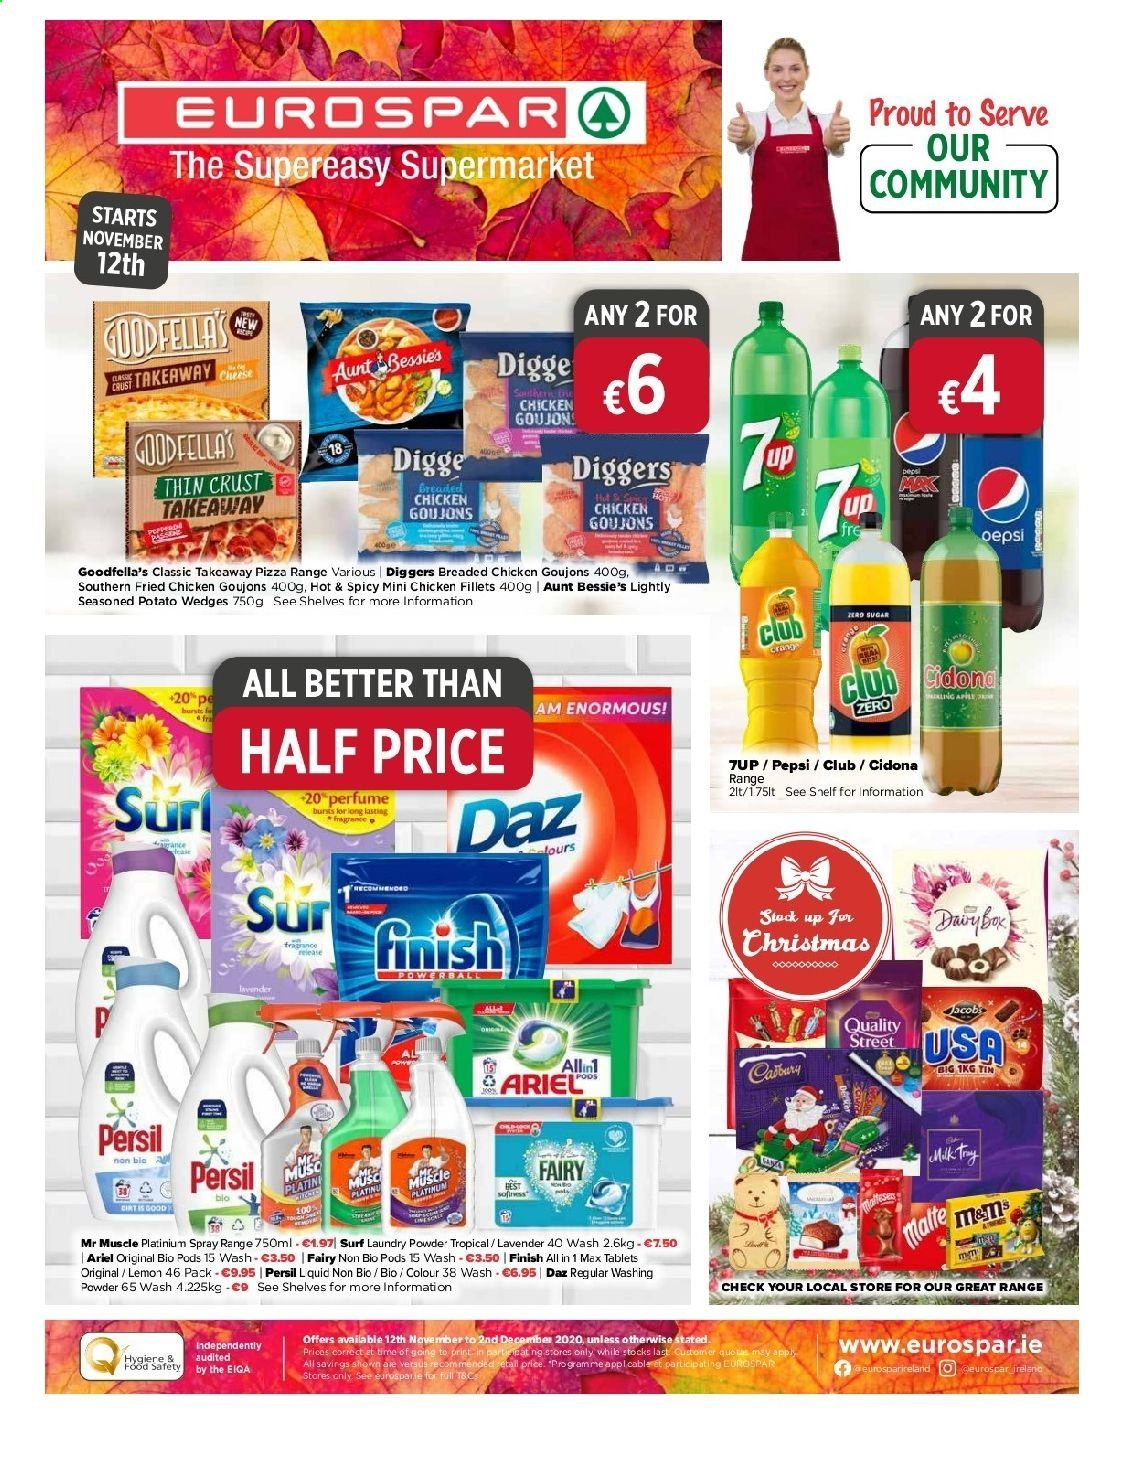 EUROSPAR offer  - 12.11.2020 - 2.12.2020 - Sales products - shelf, shelves, spray, sugar, pizza, potato wedges, powder, chicken, pepsi, persil, ariel, washing powder, tablets, fried chicken, lemon. Page 1.